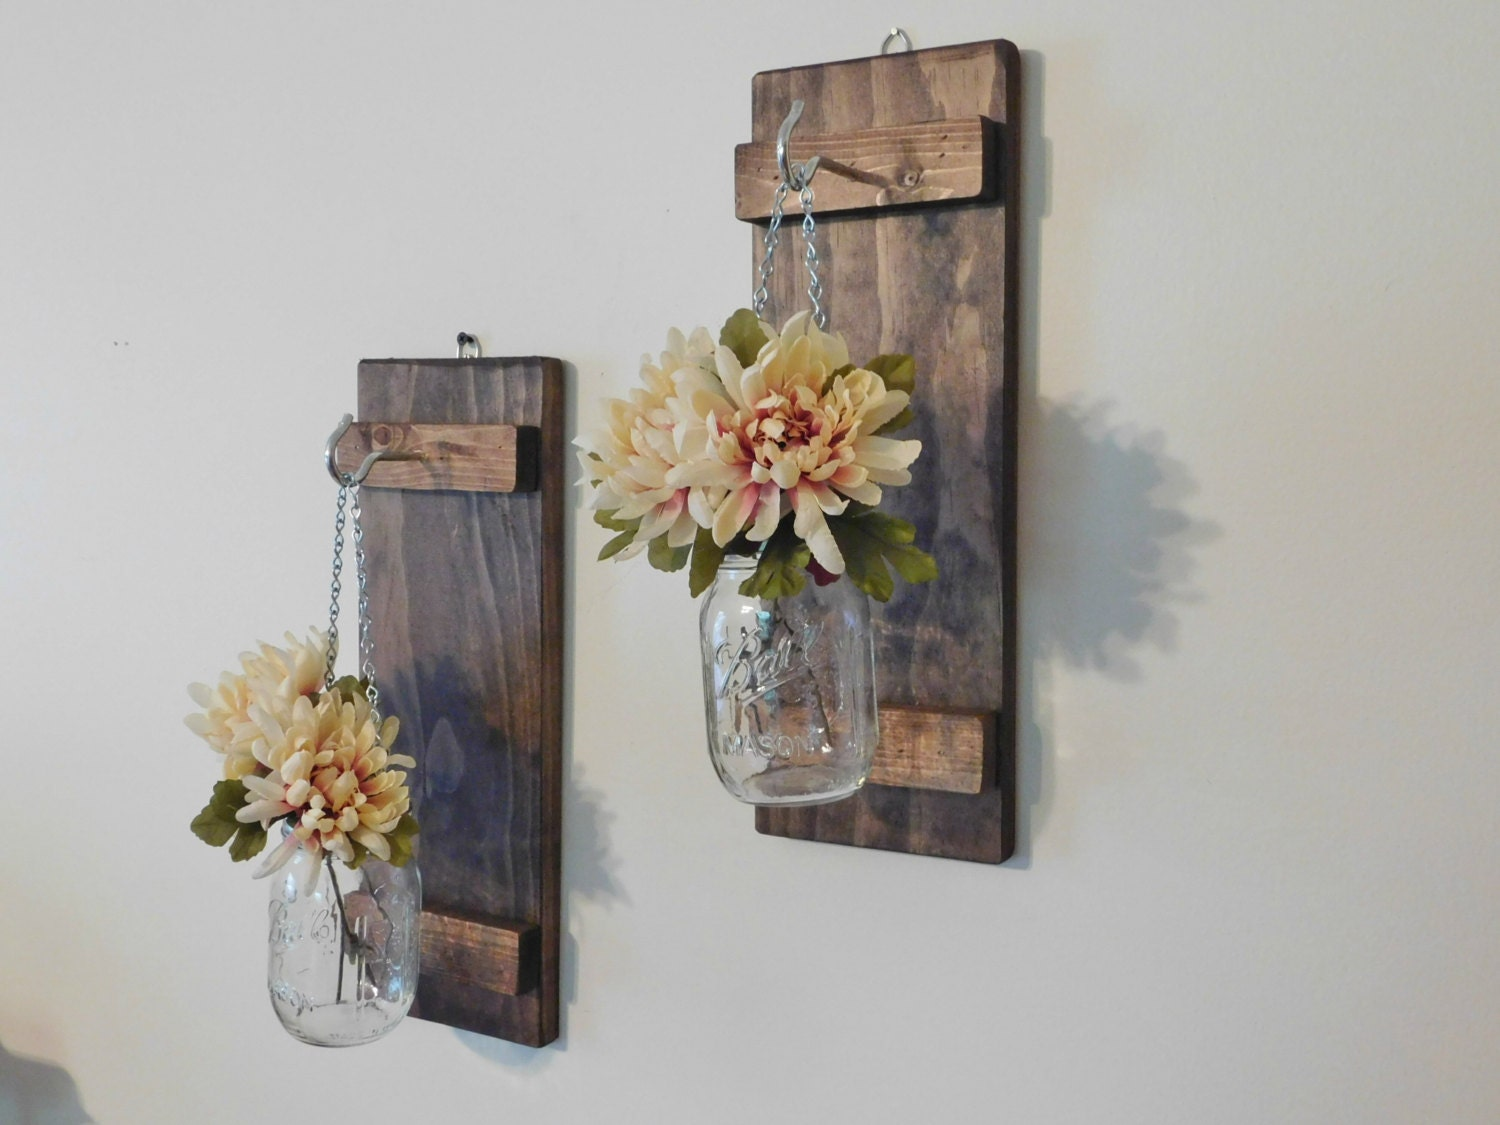 Hanging mason jar wall sconce flower vase candle sconce wall for Wall decoration items